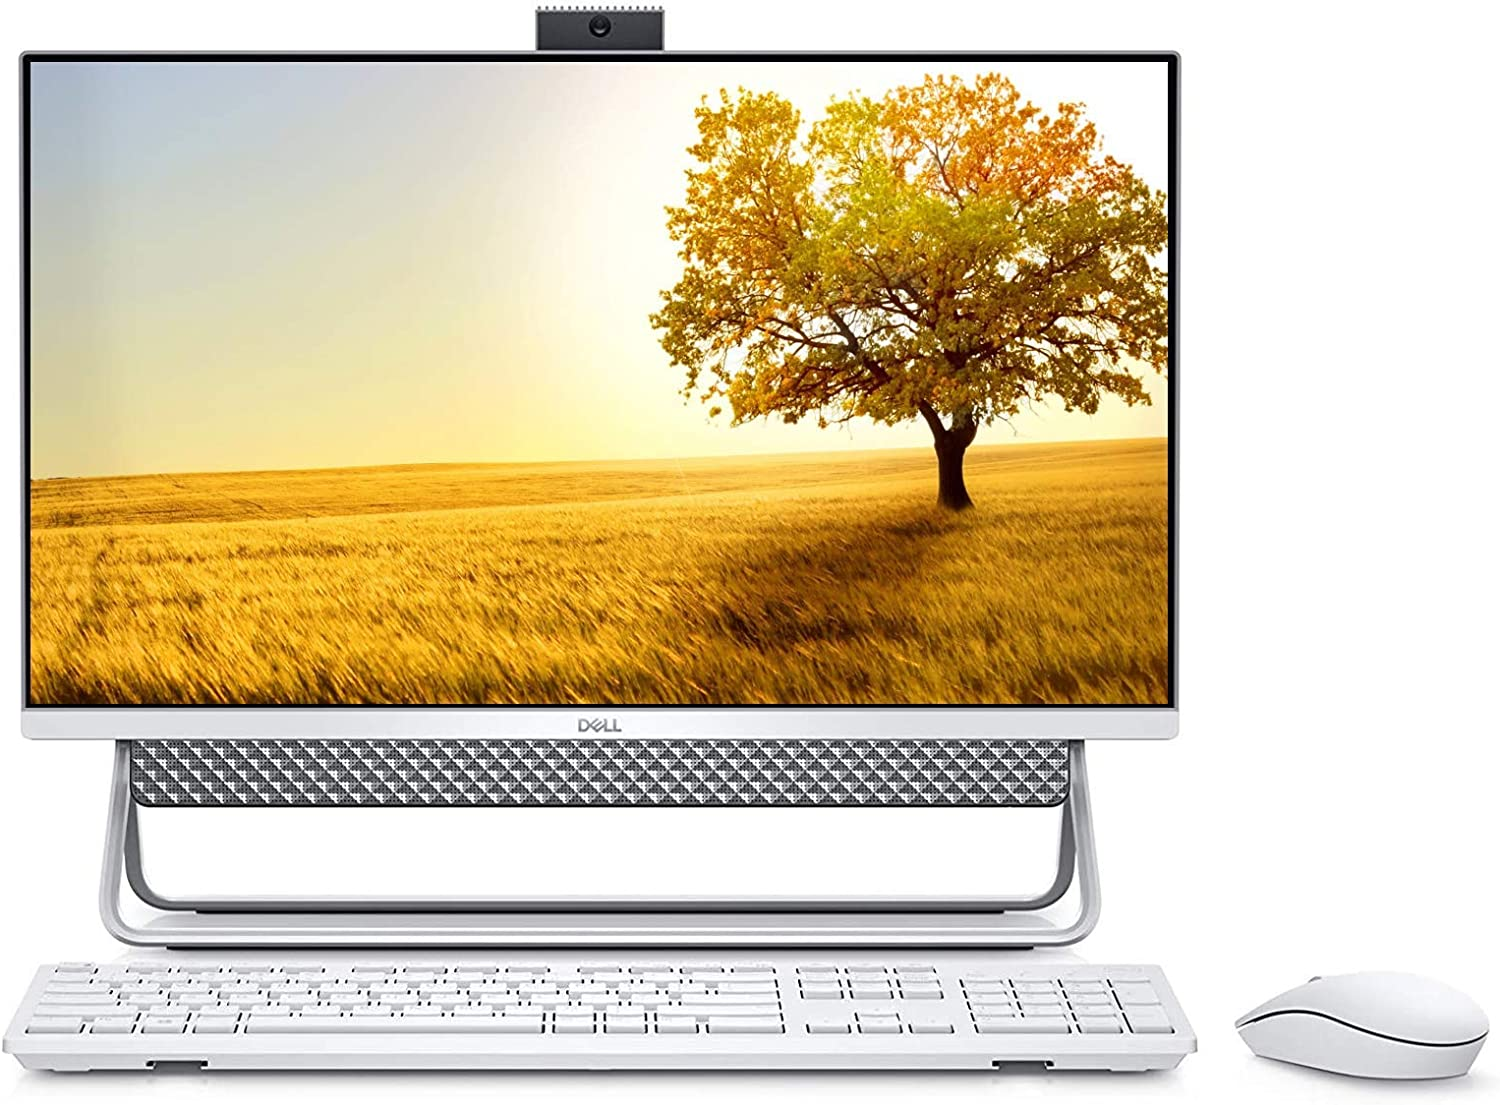 Dell Inspiron 7700 All in One Desktop 27